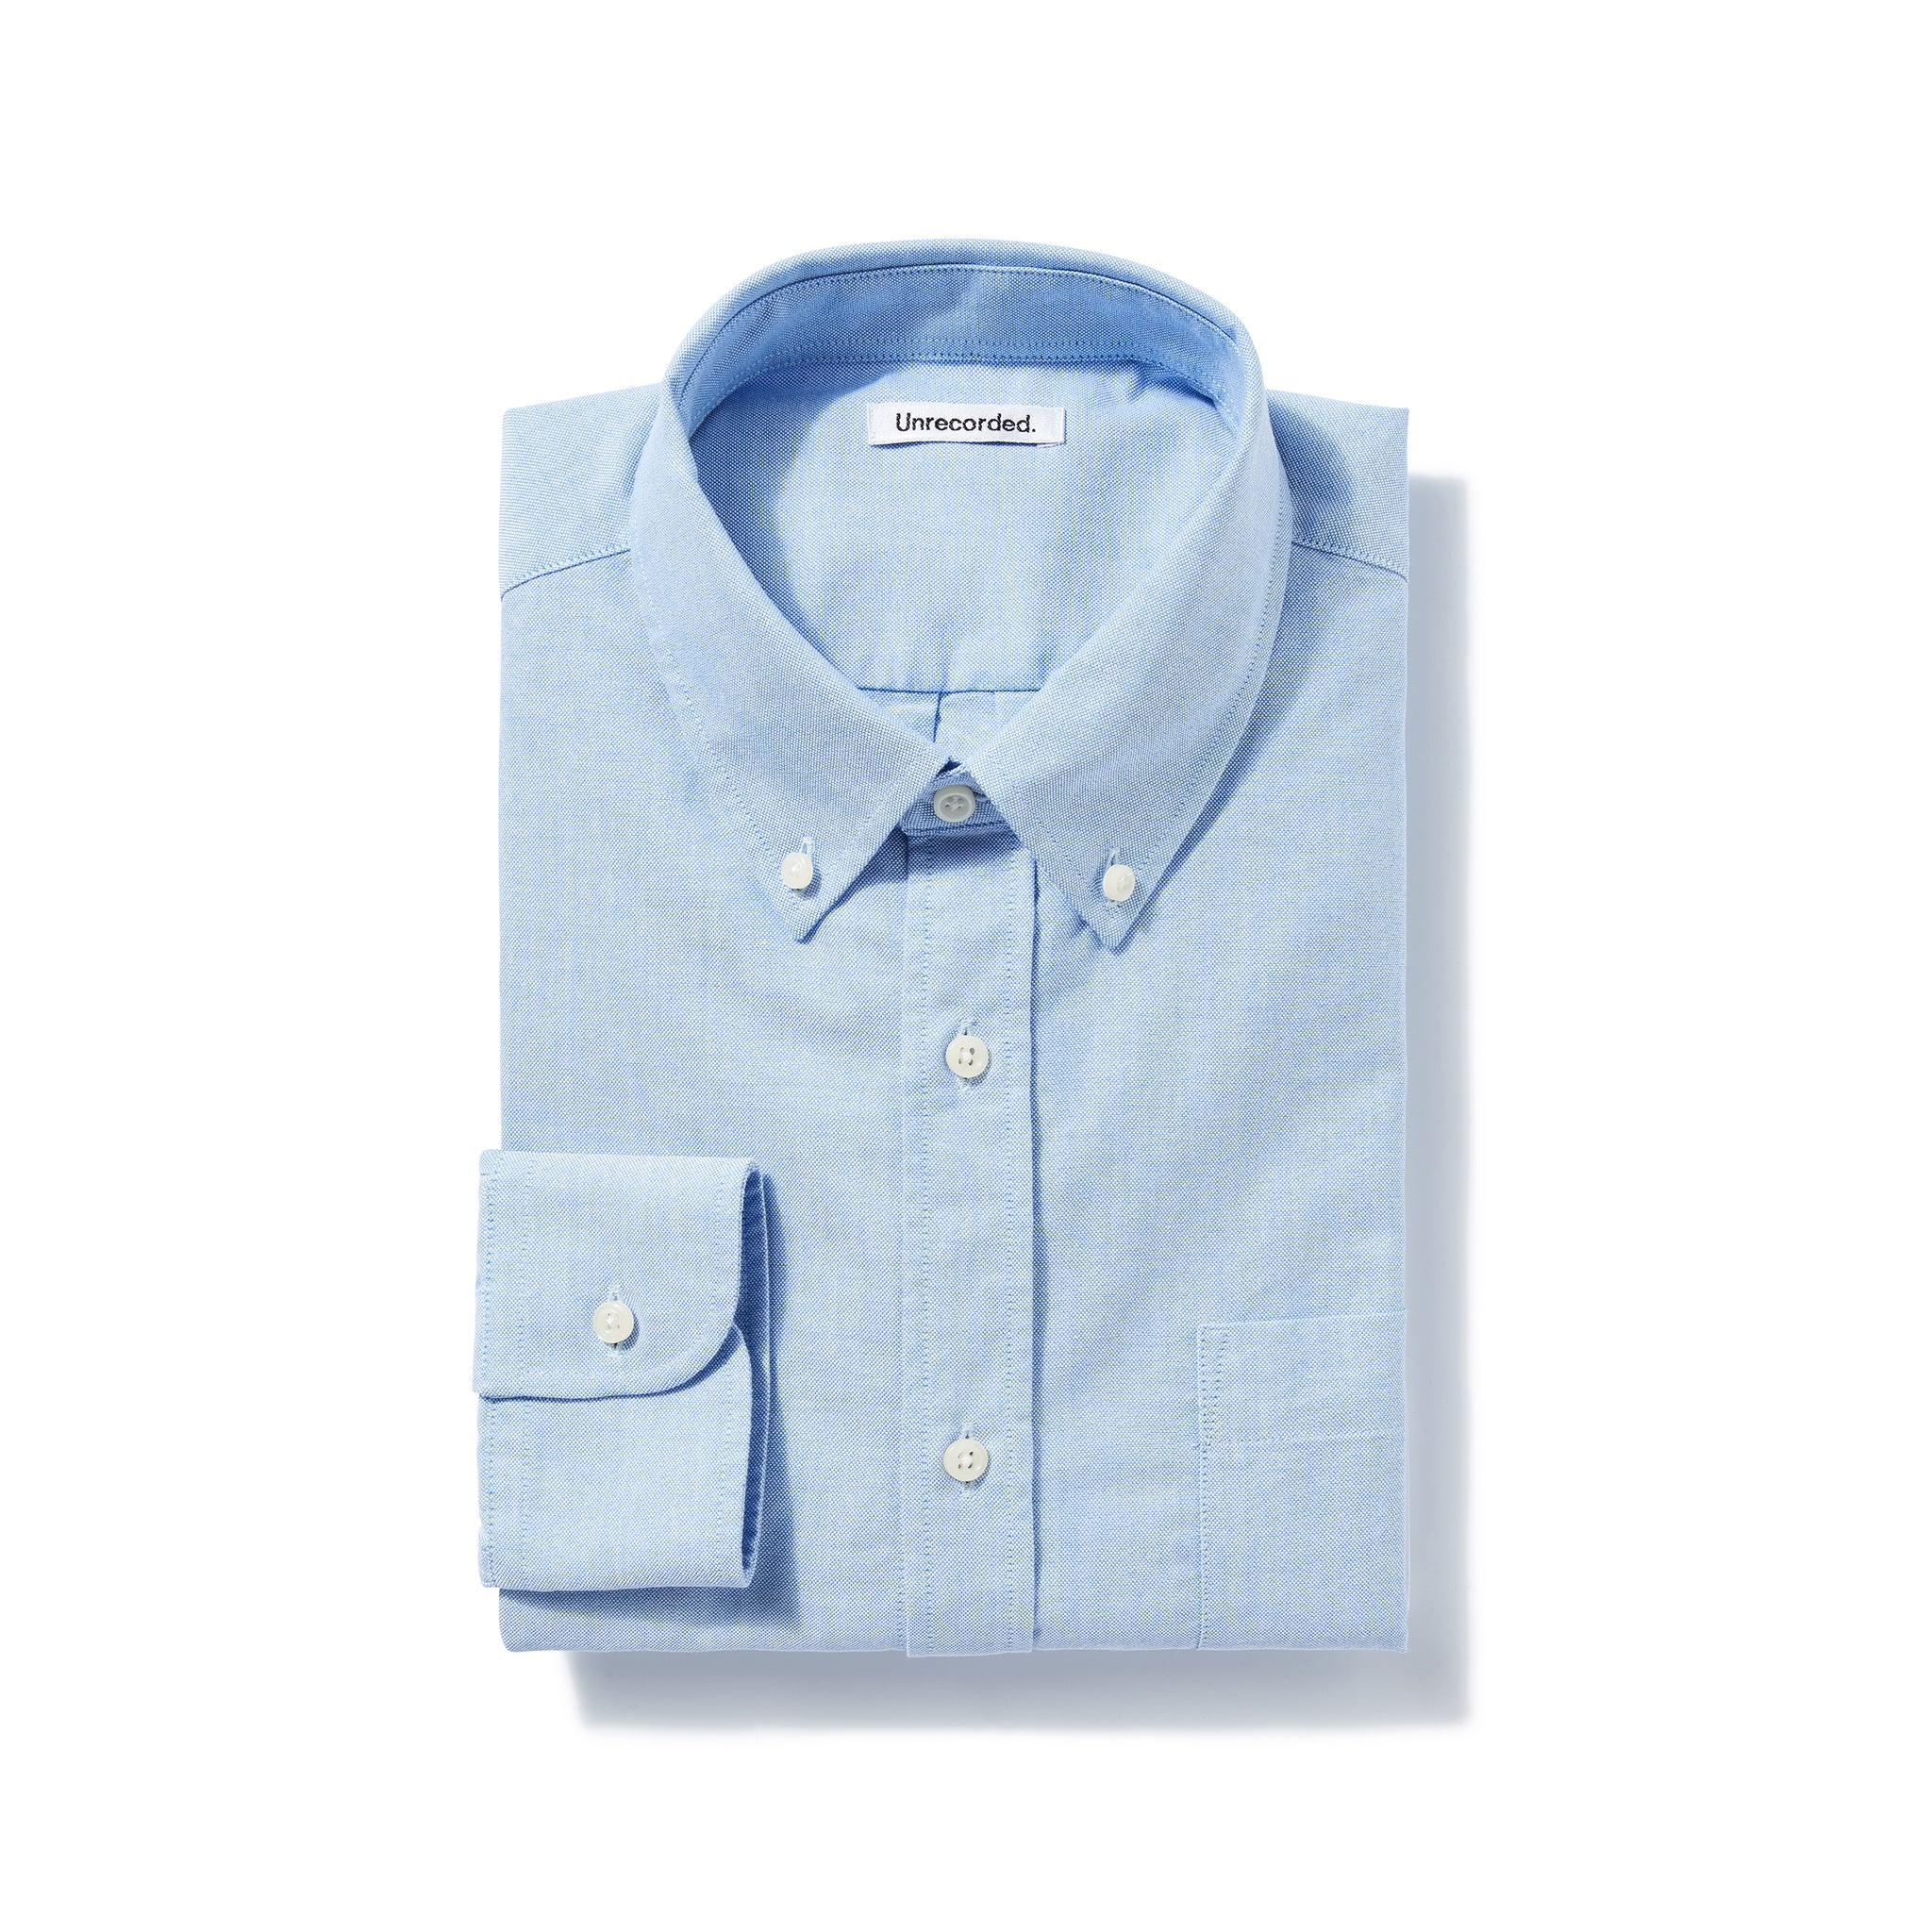 Oxford Shirt in Light Blue made from Organic Cotton